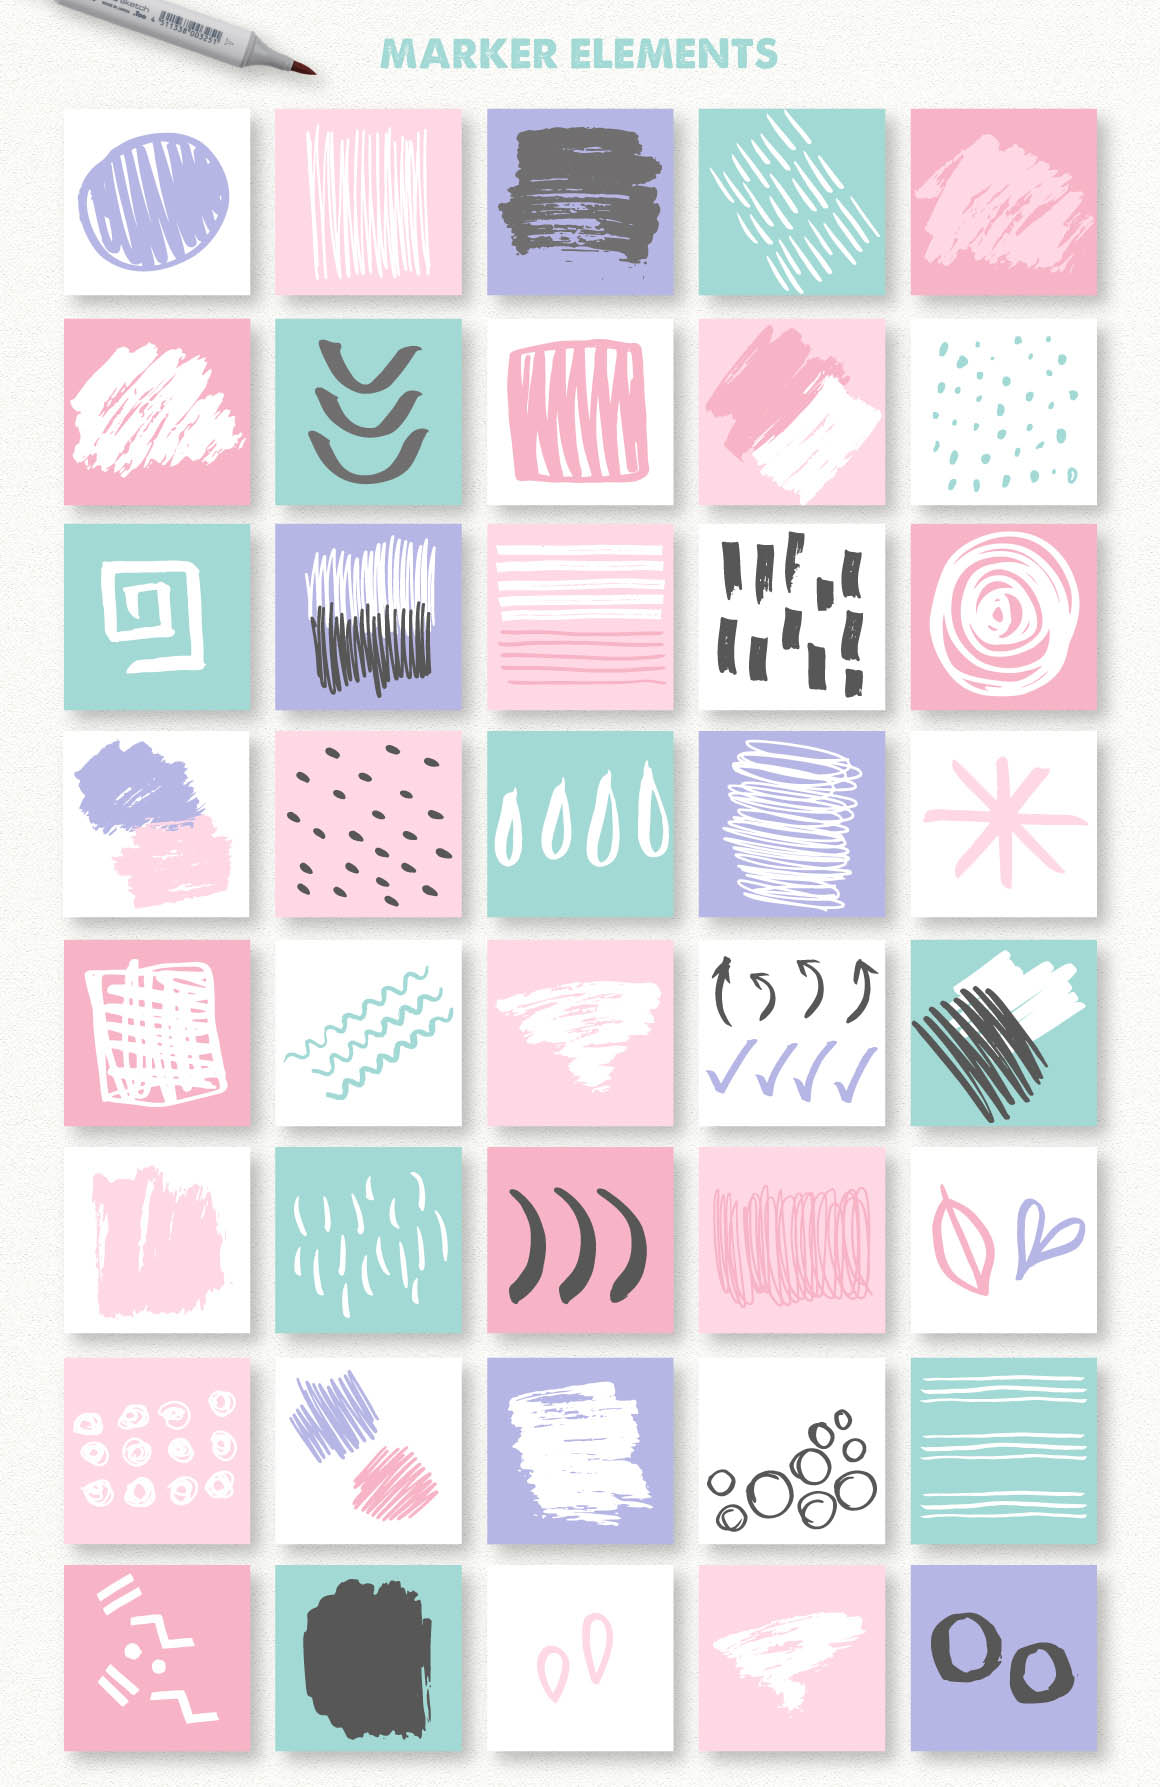 ABSTRACT_TOOLKIT-4